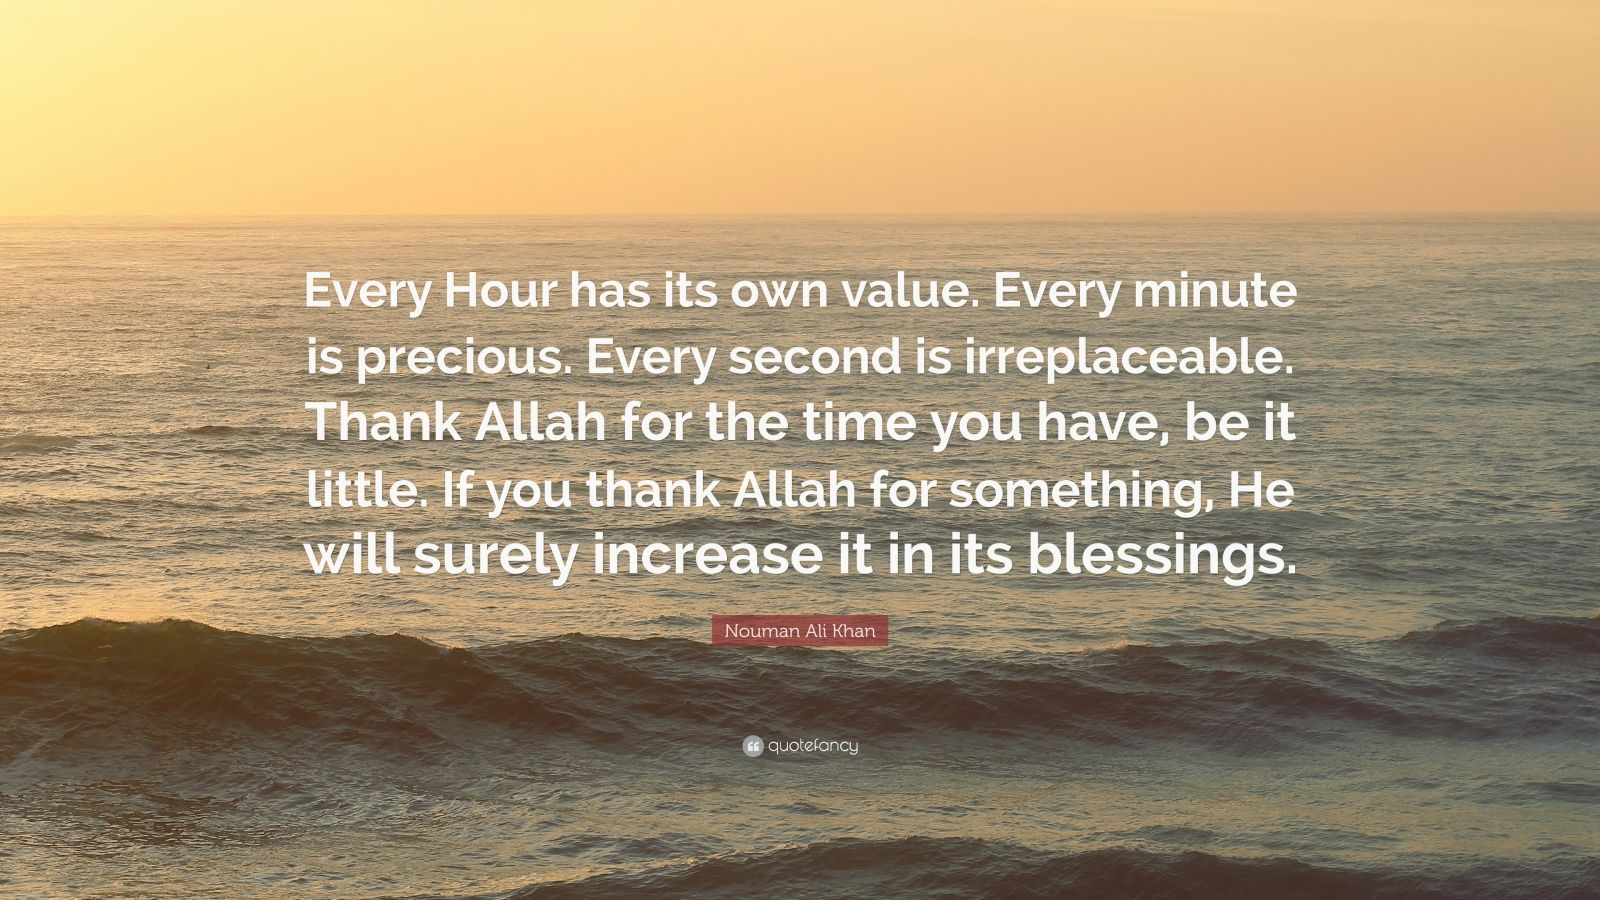 "Nouman Ali Khan Quote: ""Every Hour has its own value. Every minute is precious. Every second is irreplaceable. Thank Allah for the time you have, be it little. If you thank Allah for something, He will surely increase it in its blessings."""